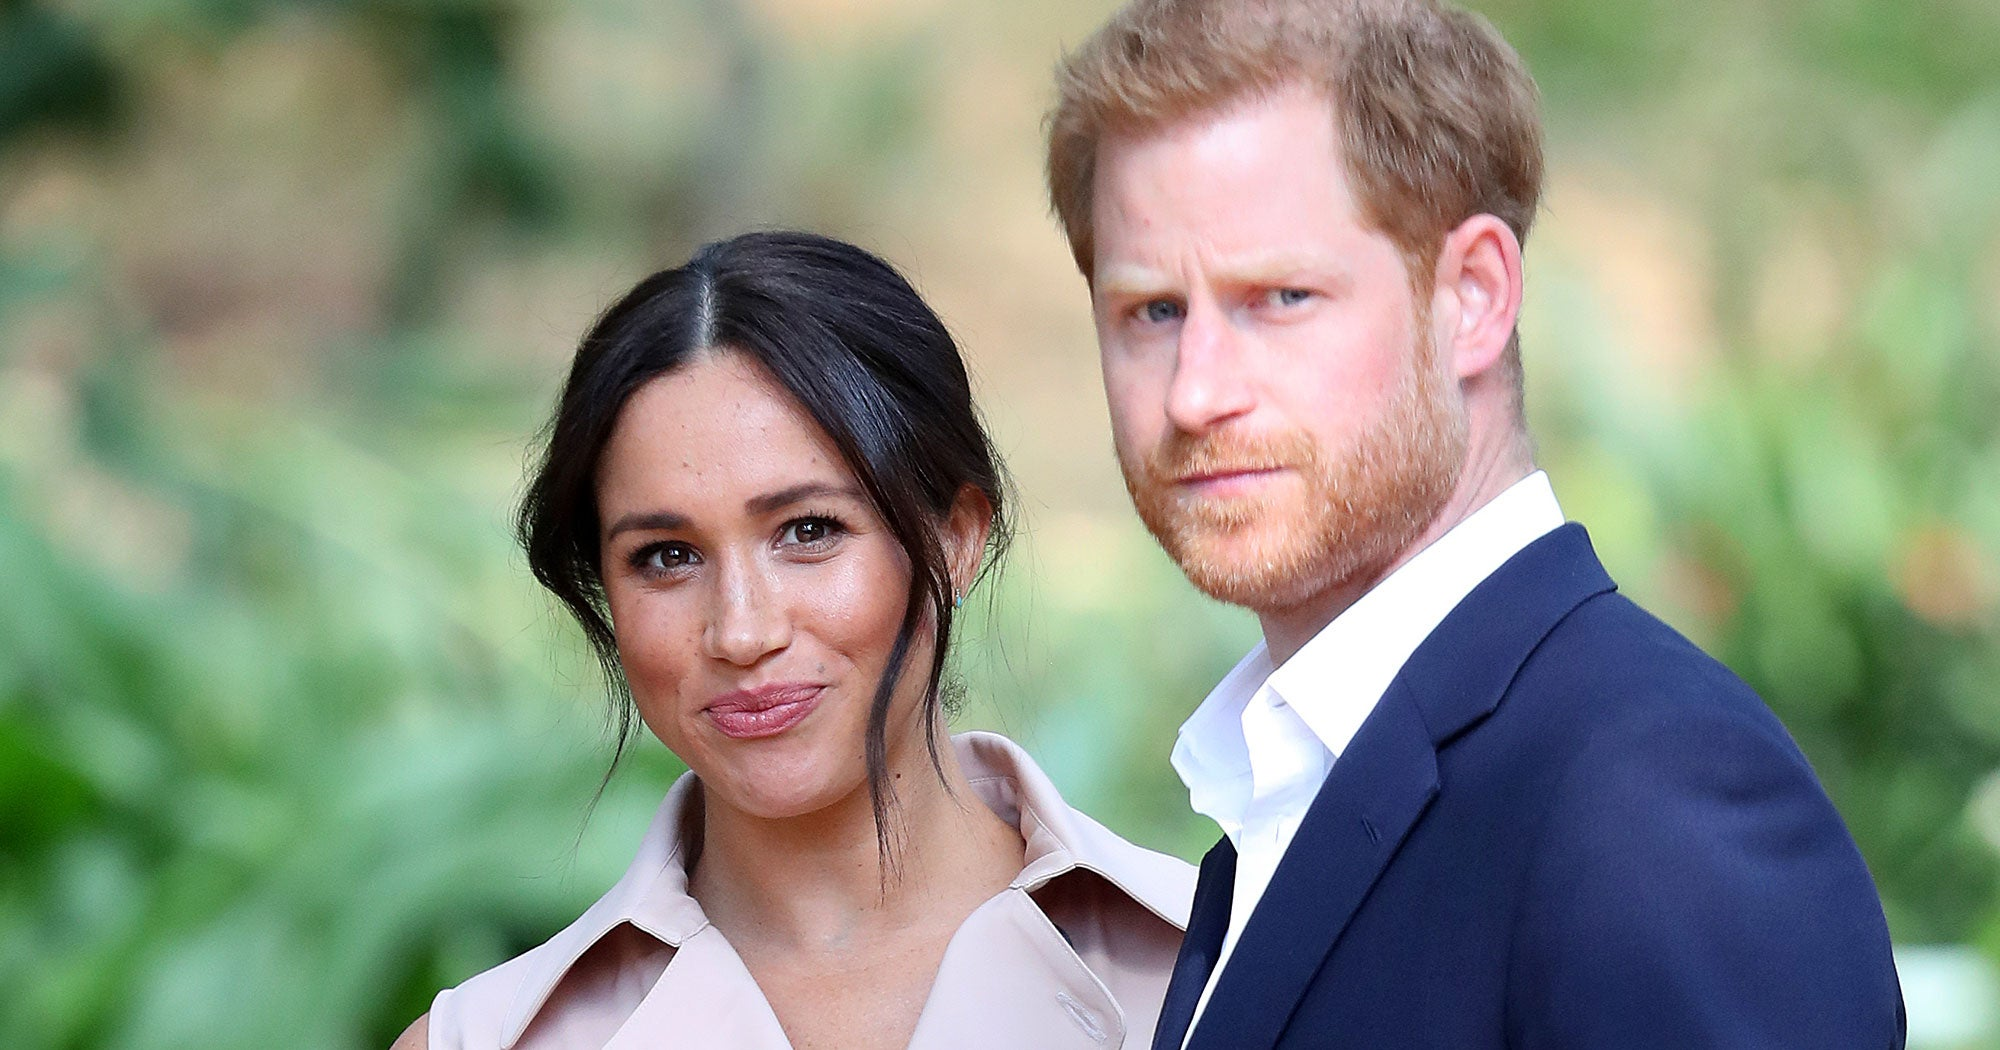 Here's Why People Think Prince Harry Meghan Markle Are Mad They Can't Use Sussex Royal